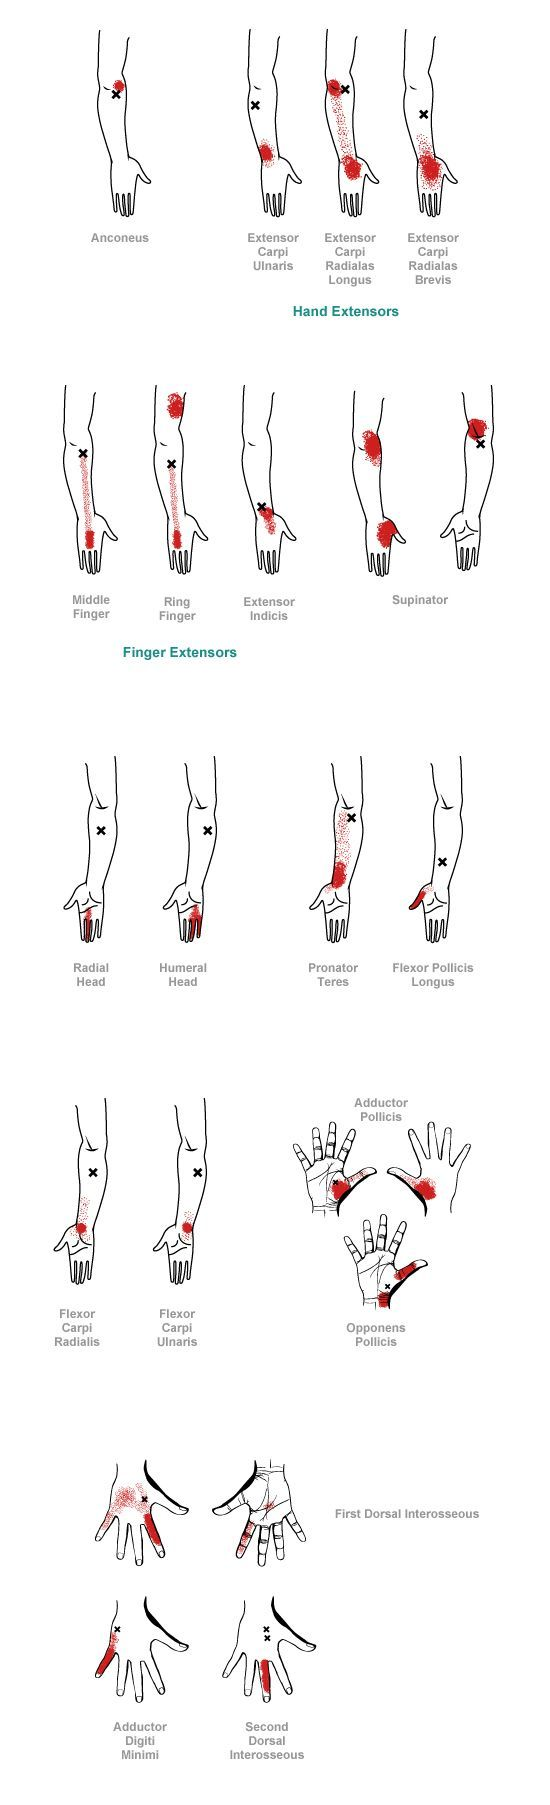 17 Best Images About Hand Therapy On Pinterest Human